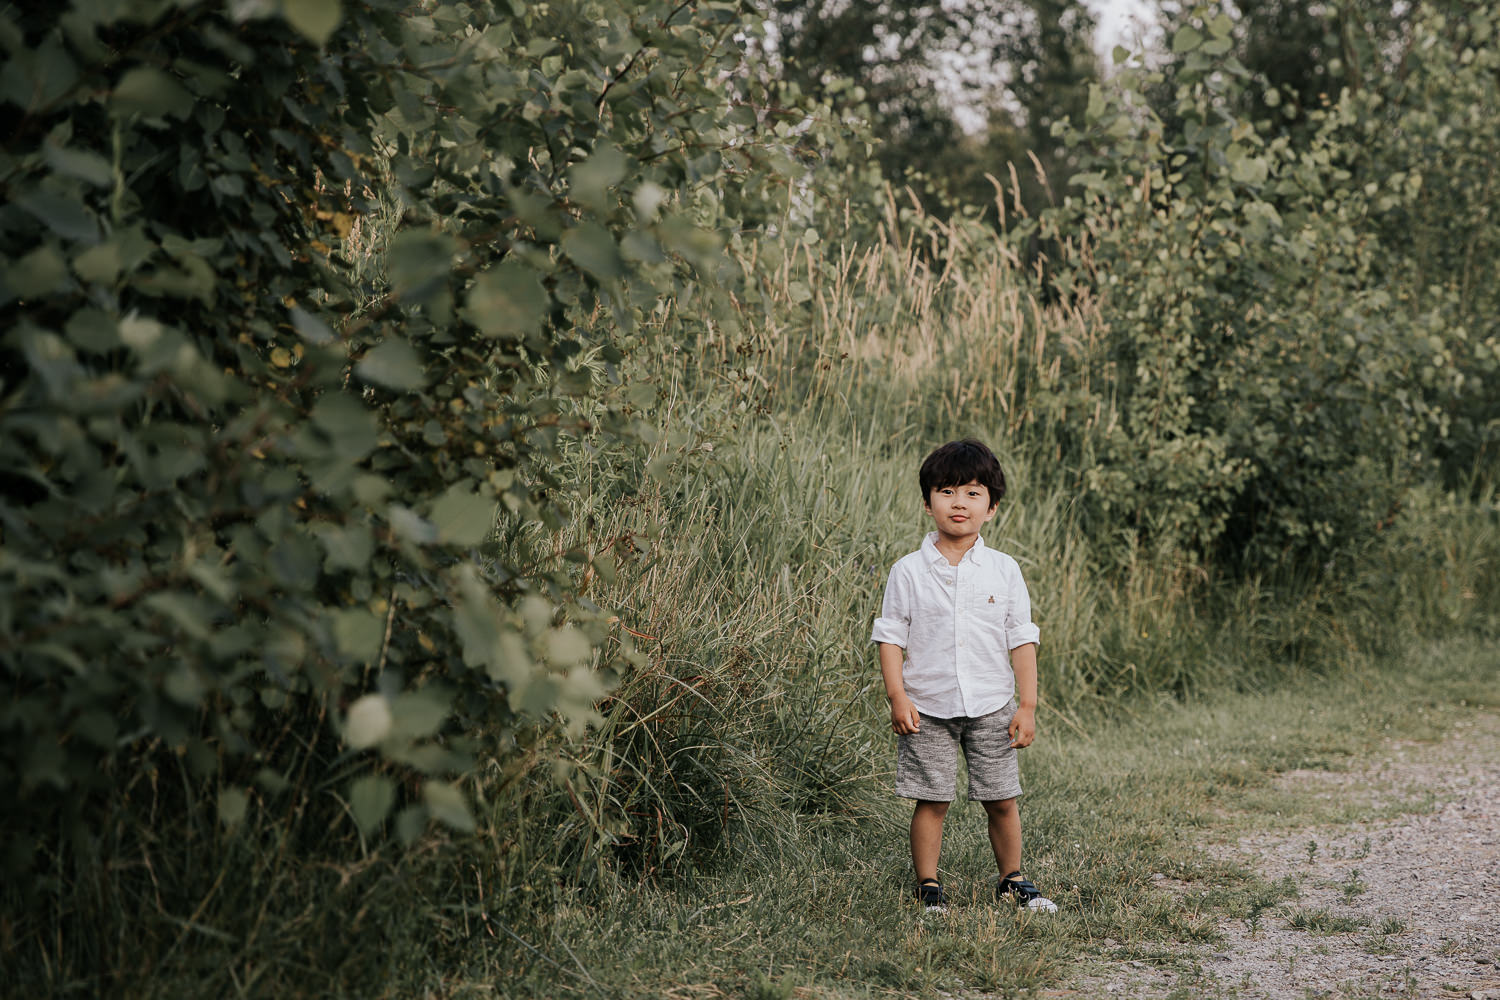 3 year old boy with dark hair wearing white shirt and grey shorts standing next to long green grasses and smirking at camera  -Barrie Lifestyle Photography